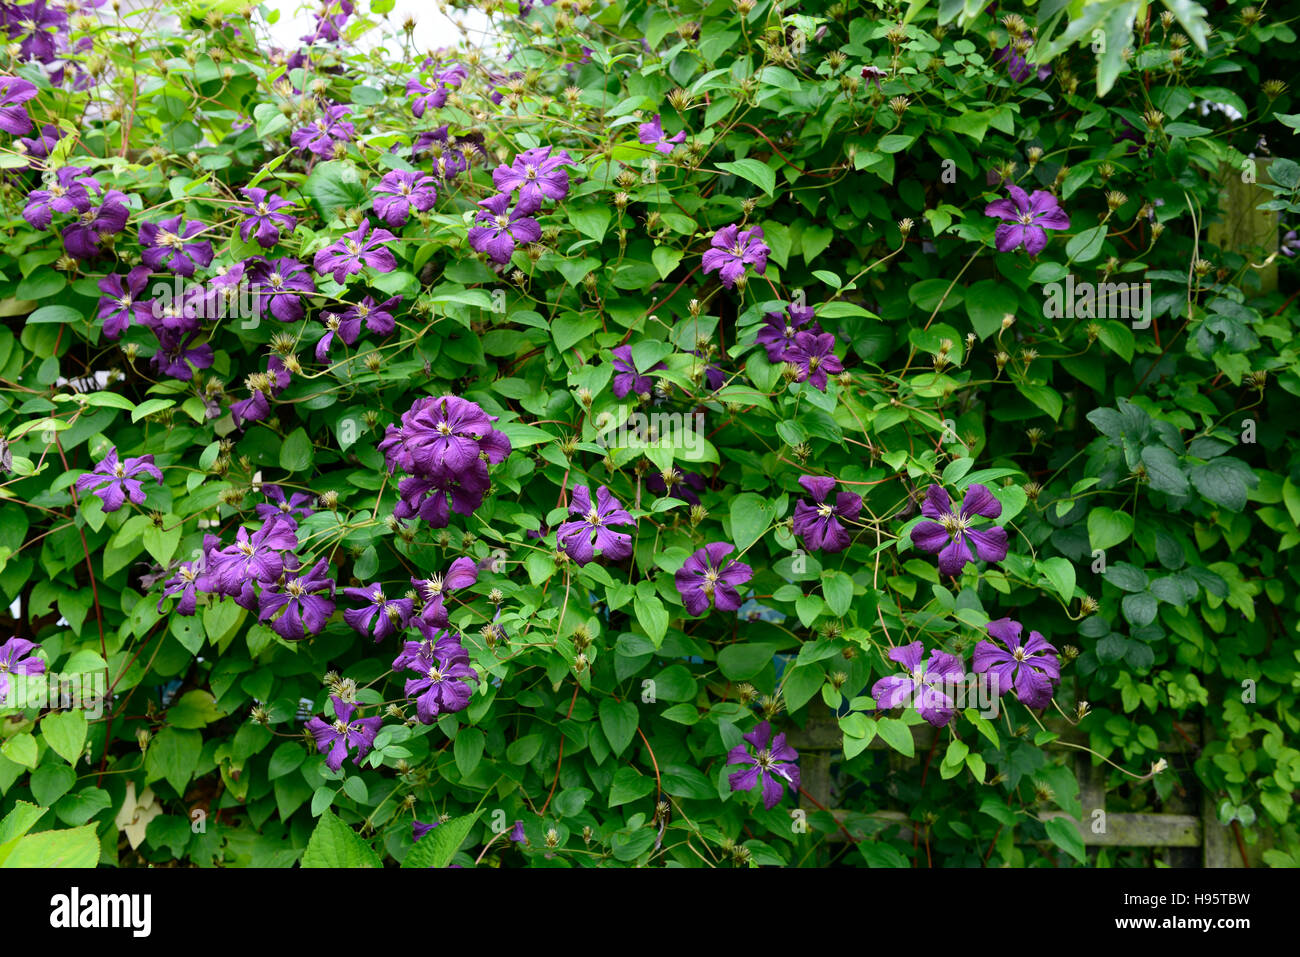 clematis viticella stockfotos clematis viticella bilder alamy. Black Bedroom Furniture Sets. Home Design Ideas